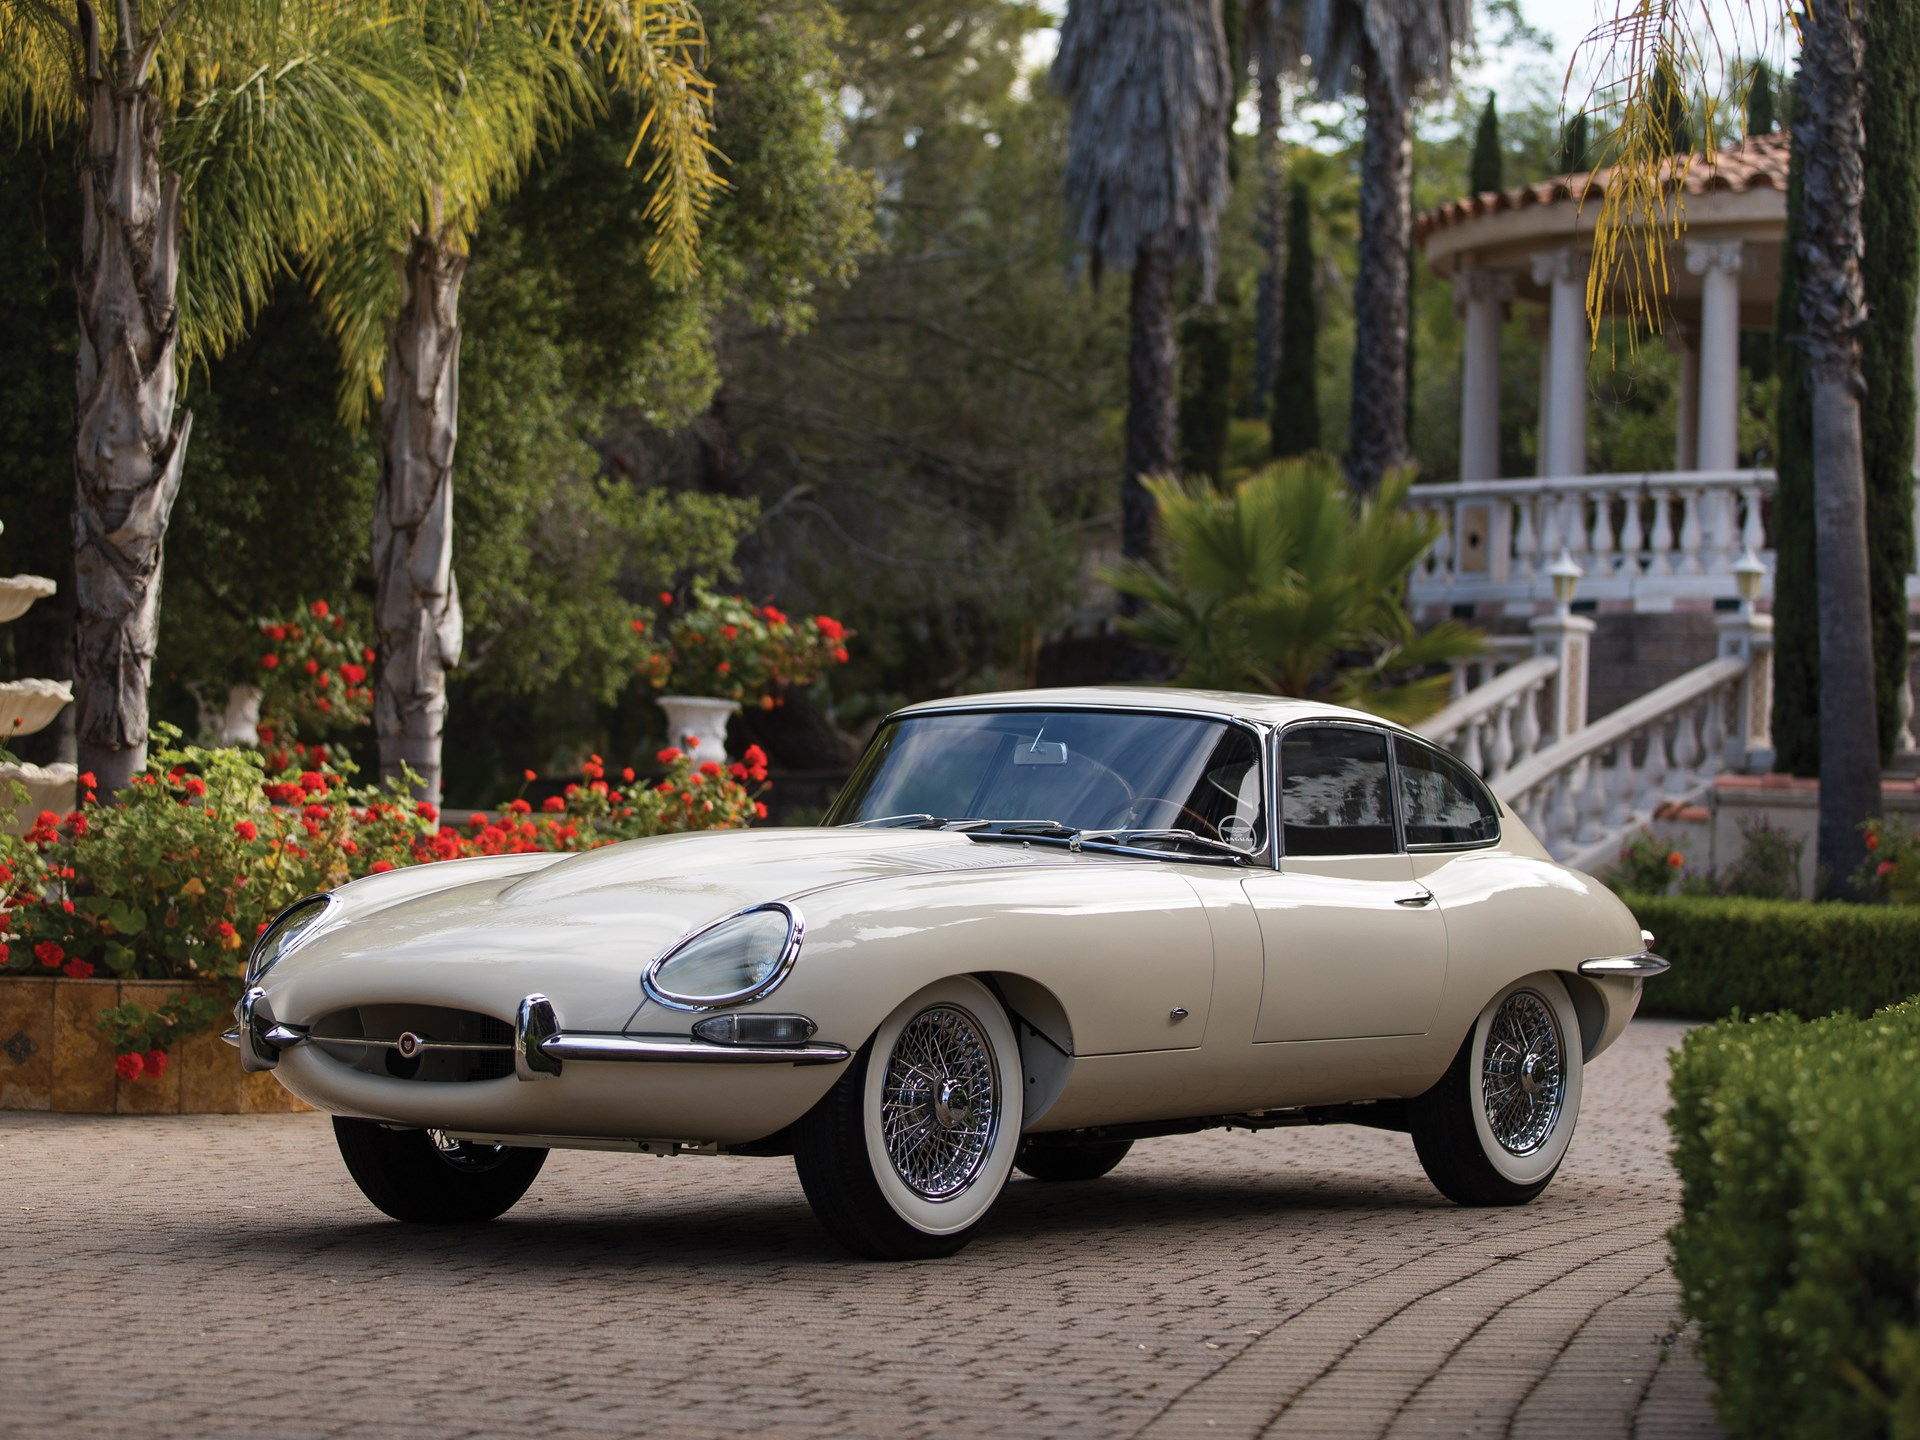 Rm sotheby 39 s 1961 jaguar e type series 1 3 8 litre fixed head coupe monterey 2018 - Jaguar e type fixed head coupe ...